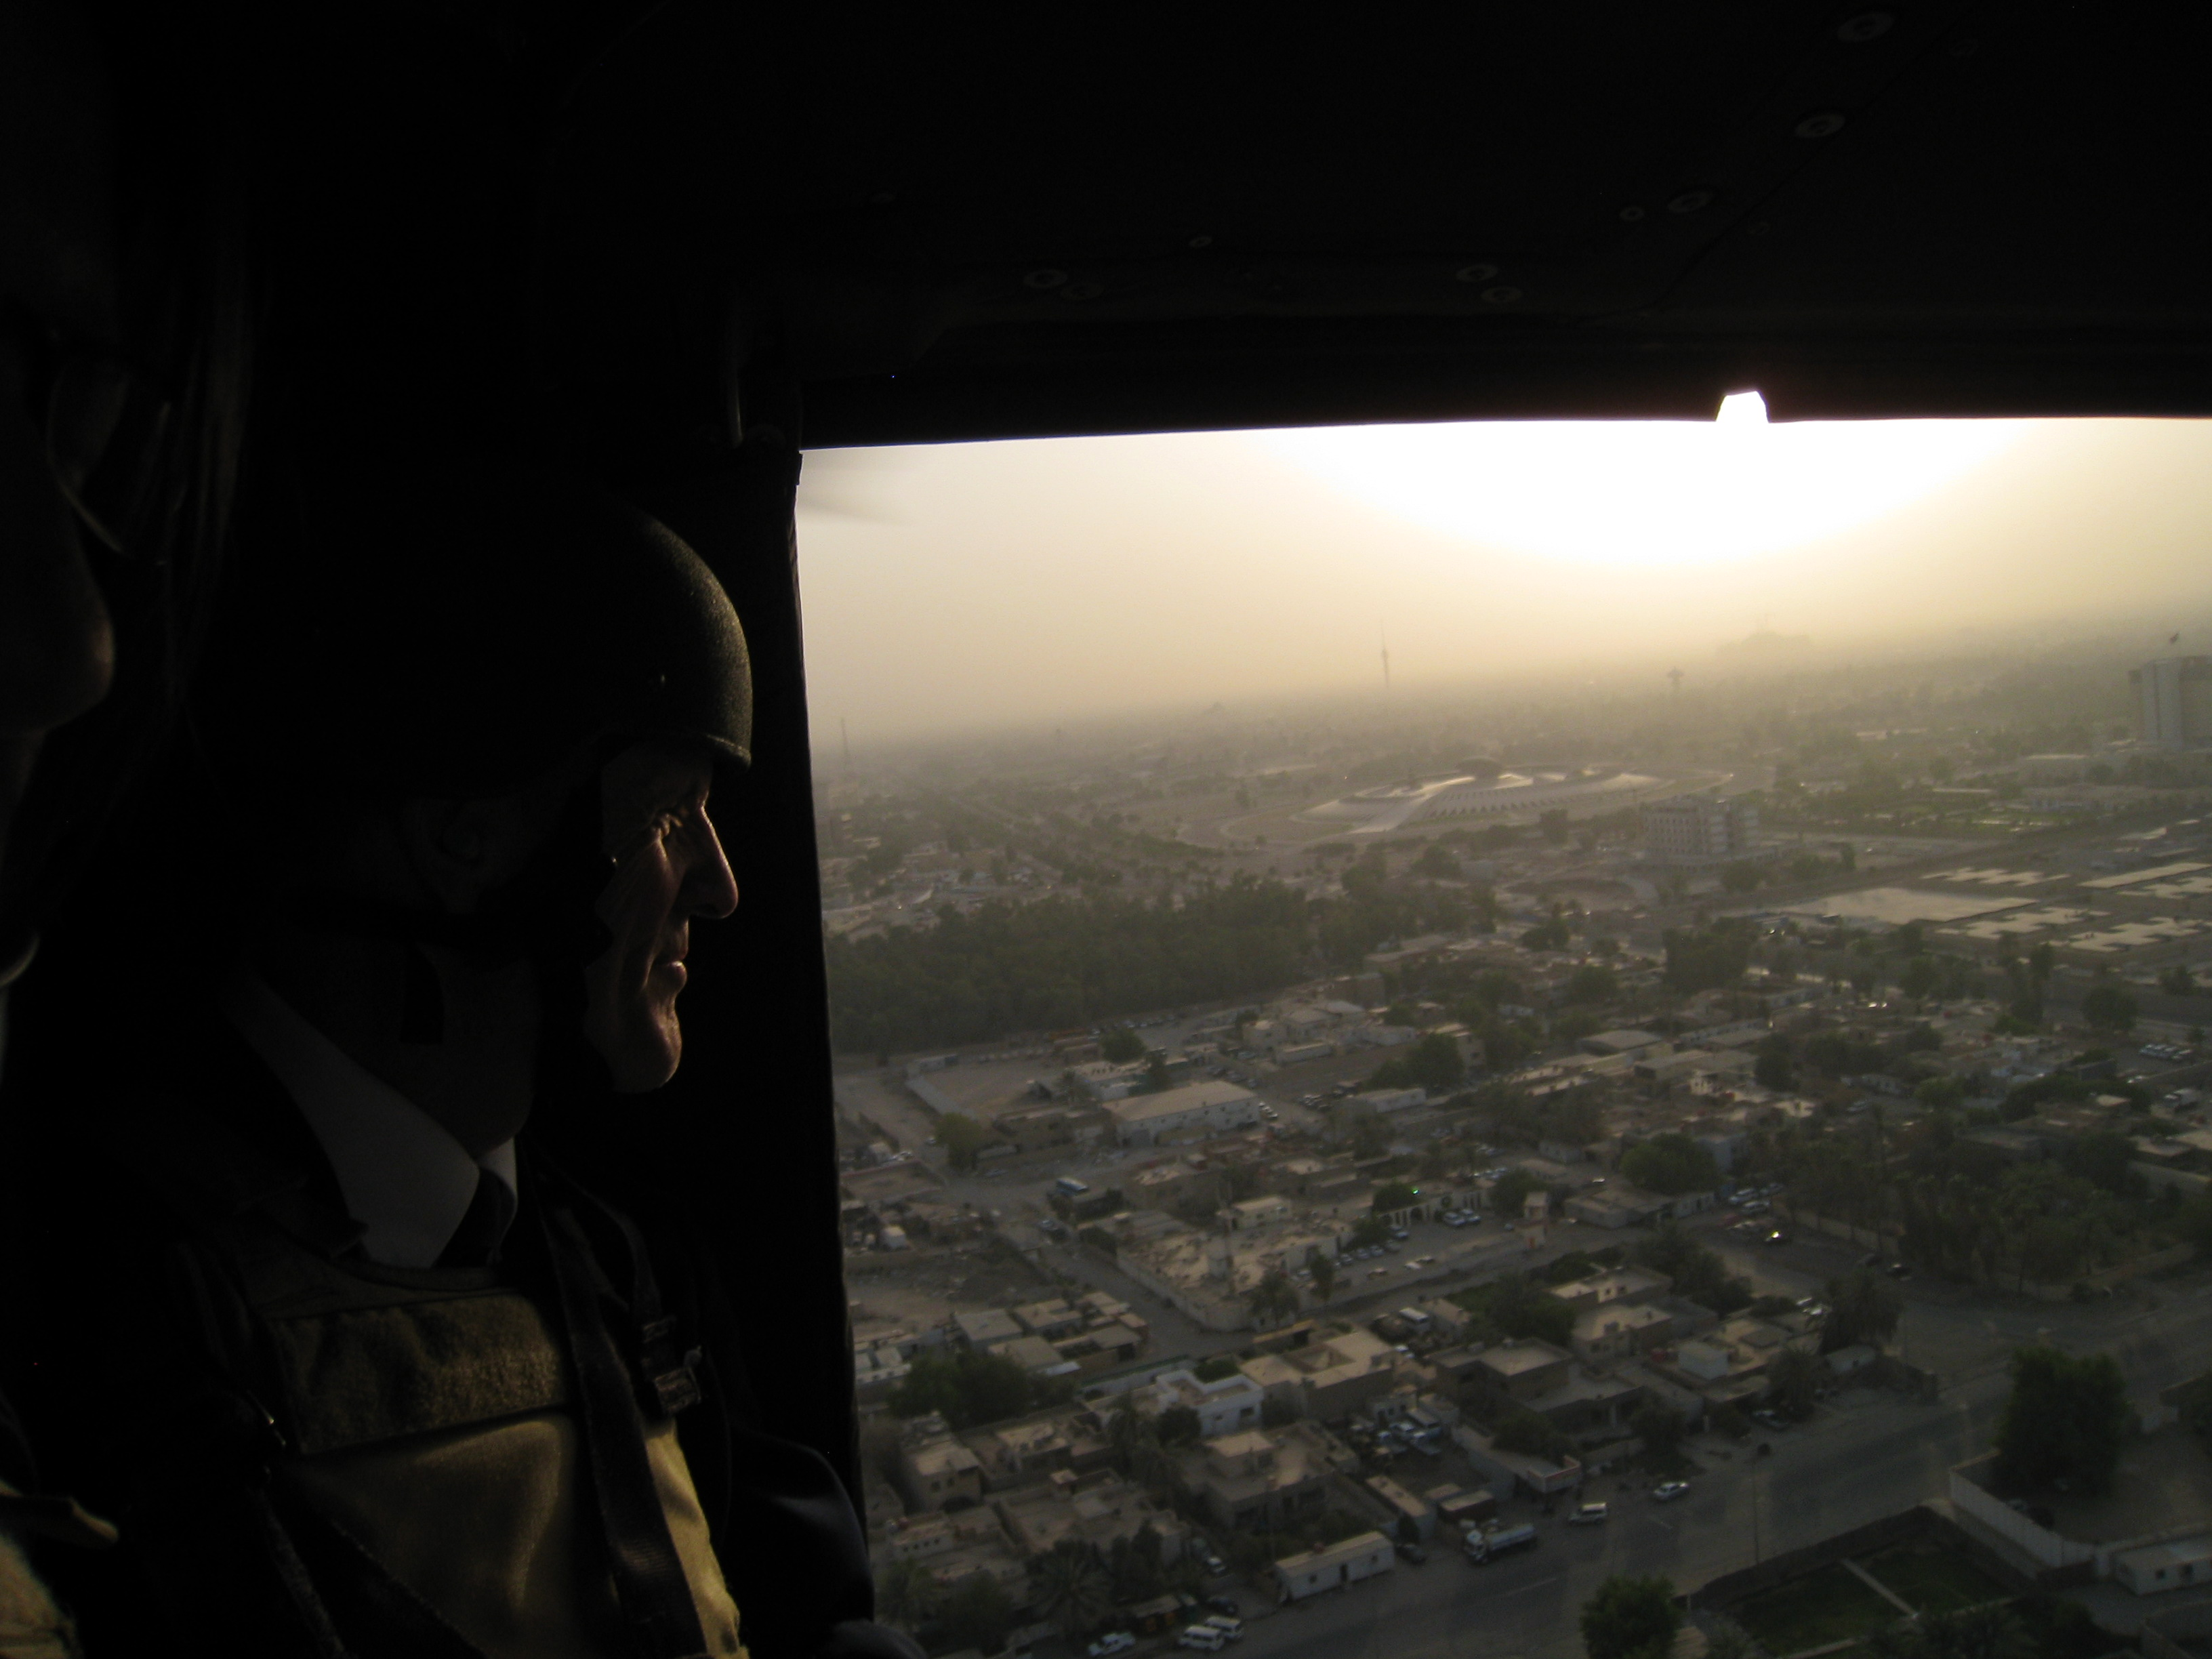 Photograph of Senator Kaufman in a helicopter above the Iraqi capital city of Baghdad, 2009 August-September